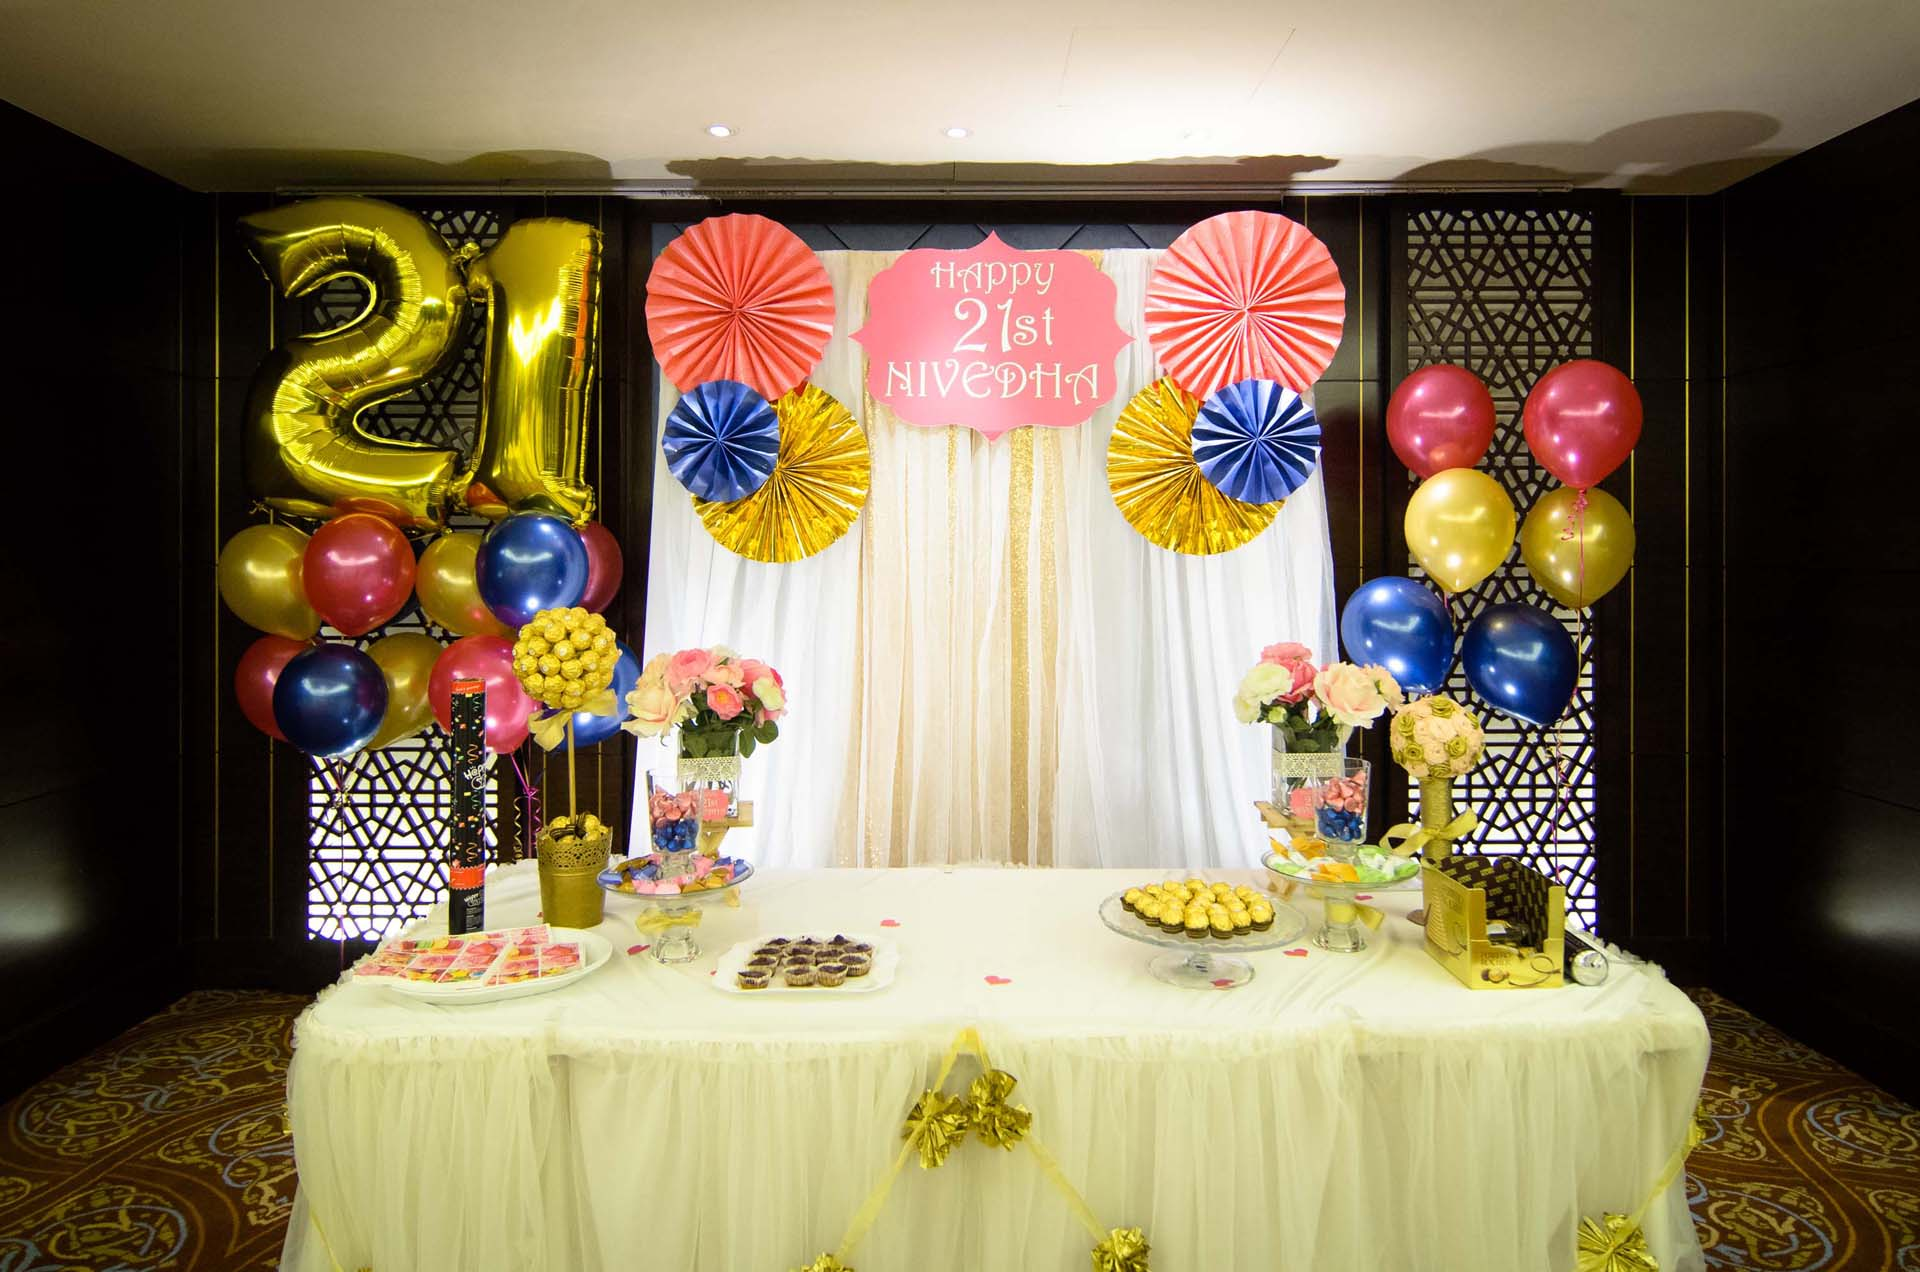 The Cake Table And Decorations At A 21st Birthday Party Photography Service By